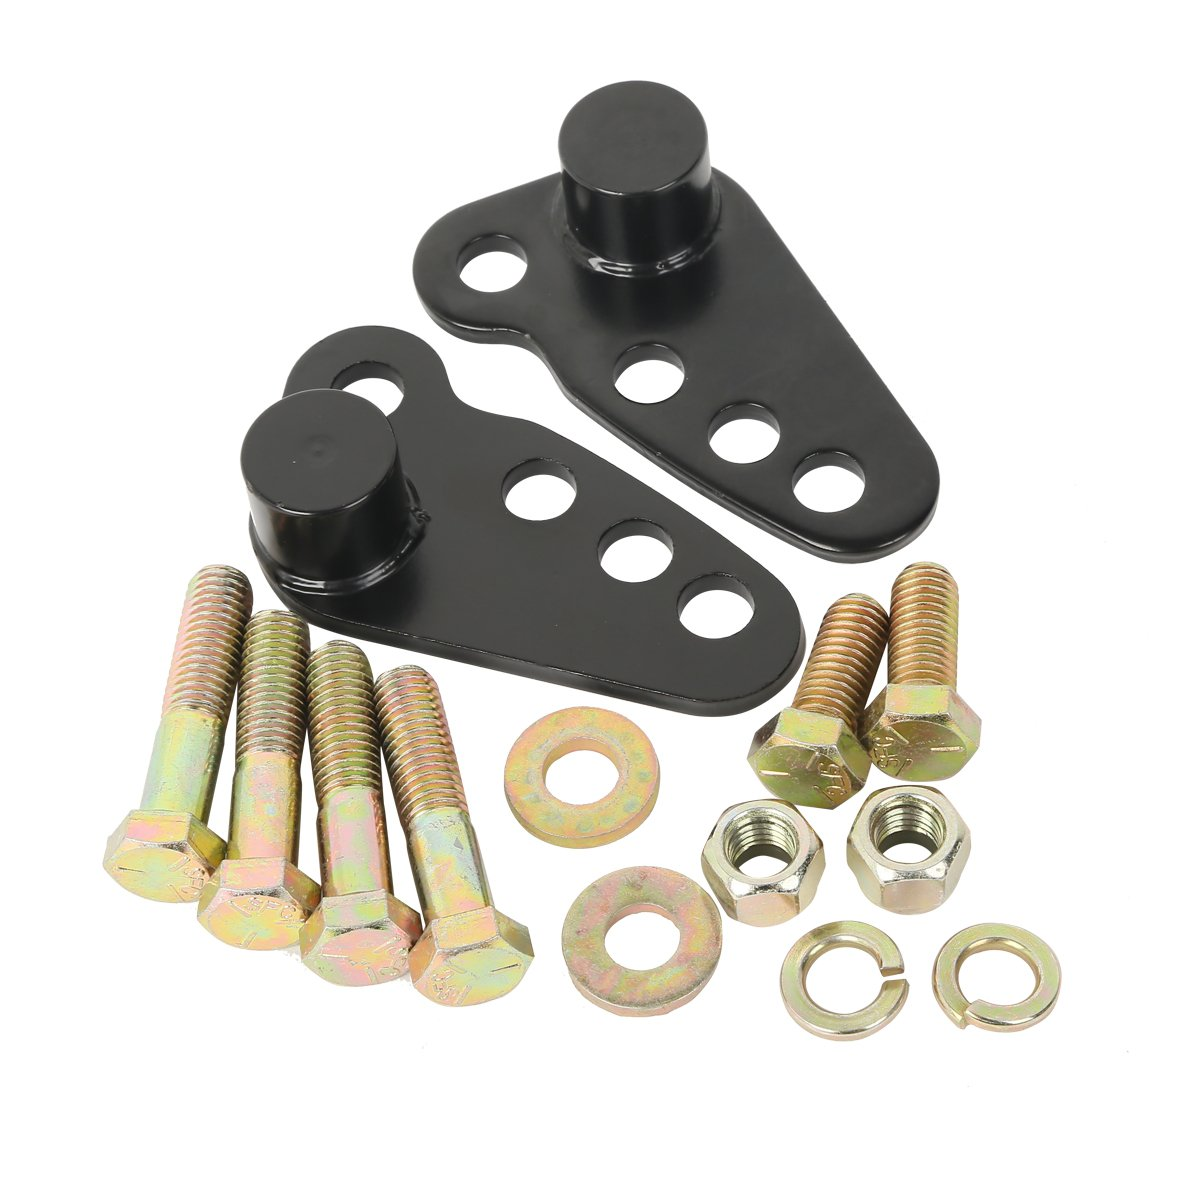 TCT-MT Lowering Drop Kit 1-3 Adjustable Fit For Harley Touring Street Electra Glide Road King 2002-2016